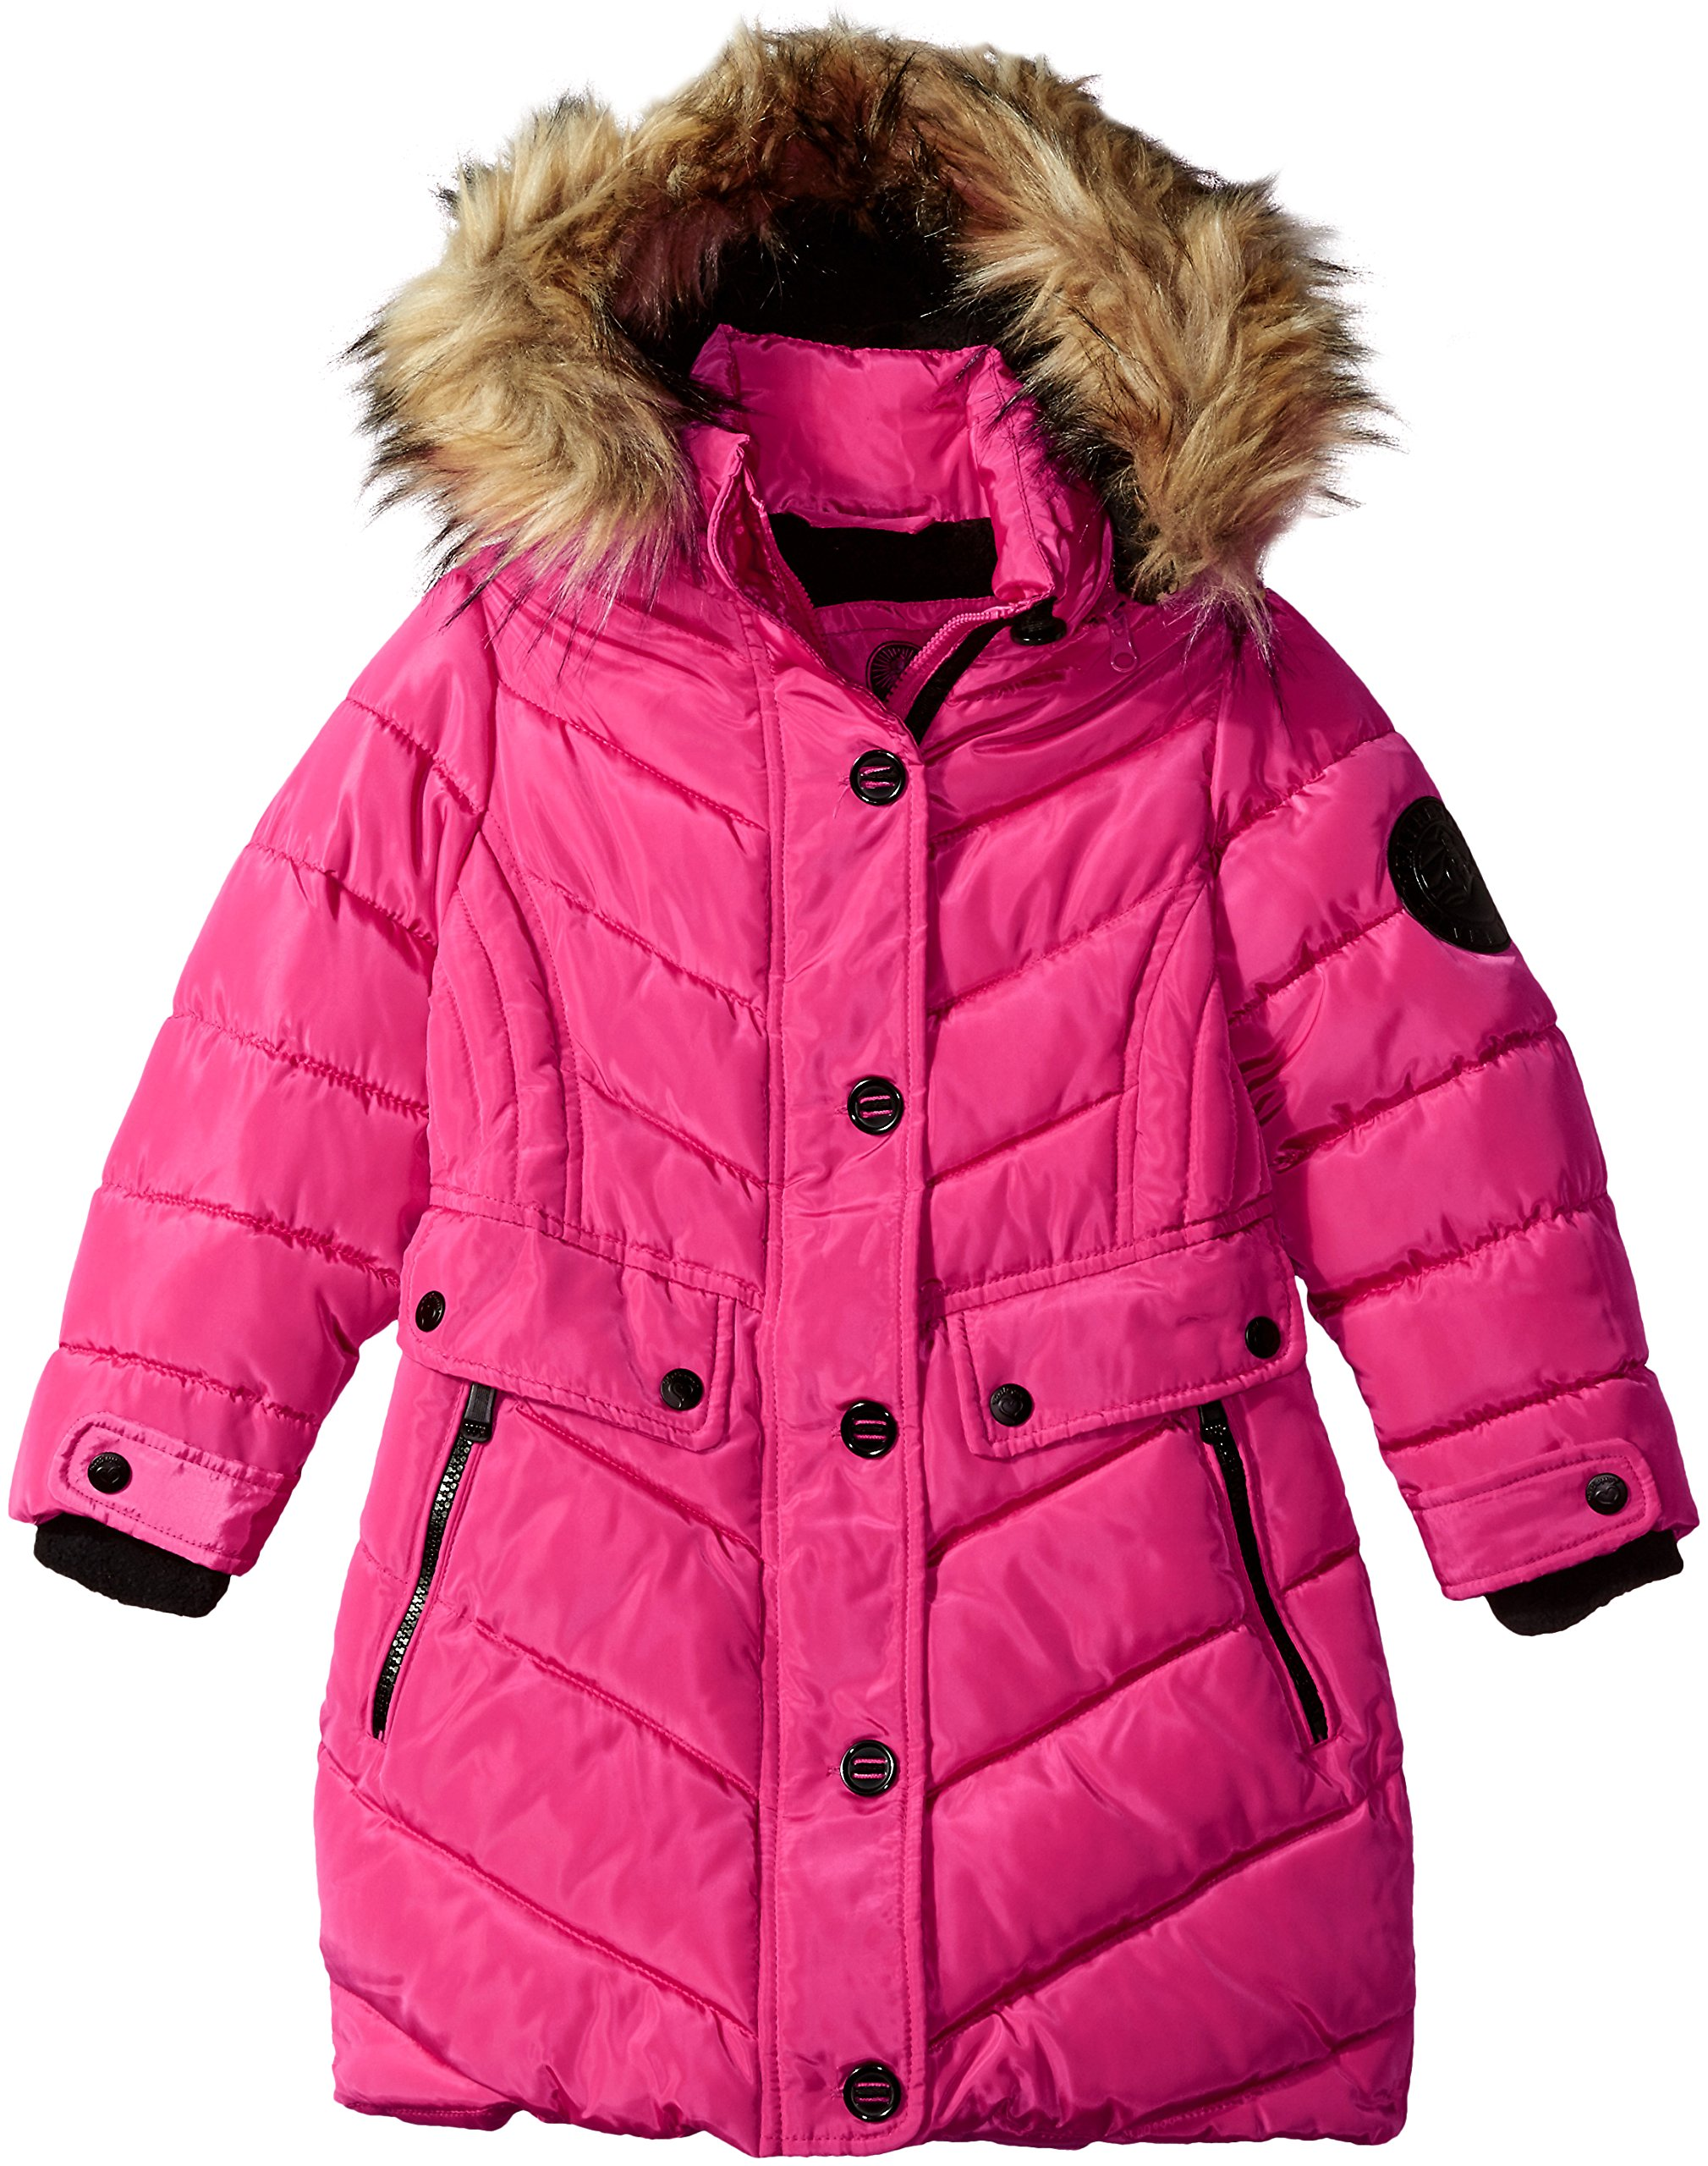 Weatherproof Little Girls' Outerwear Jacket (More Styles Available), Long Bubble-WG160-Fuchsia, 4